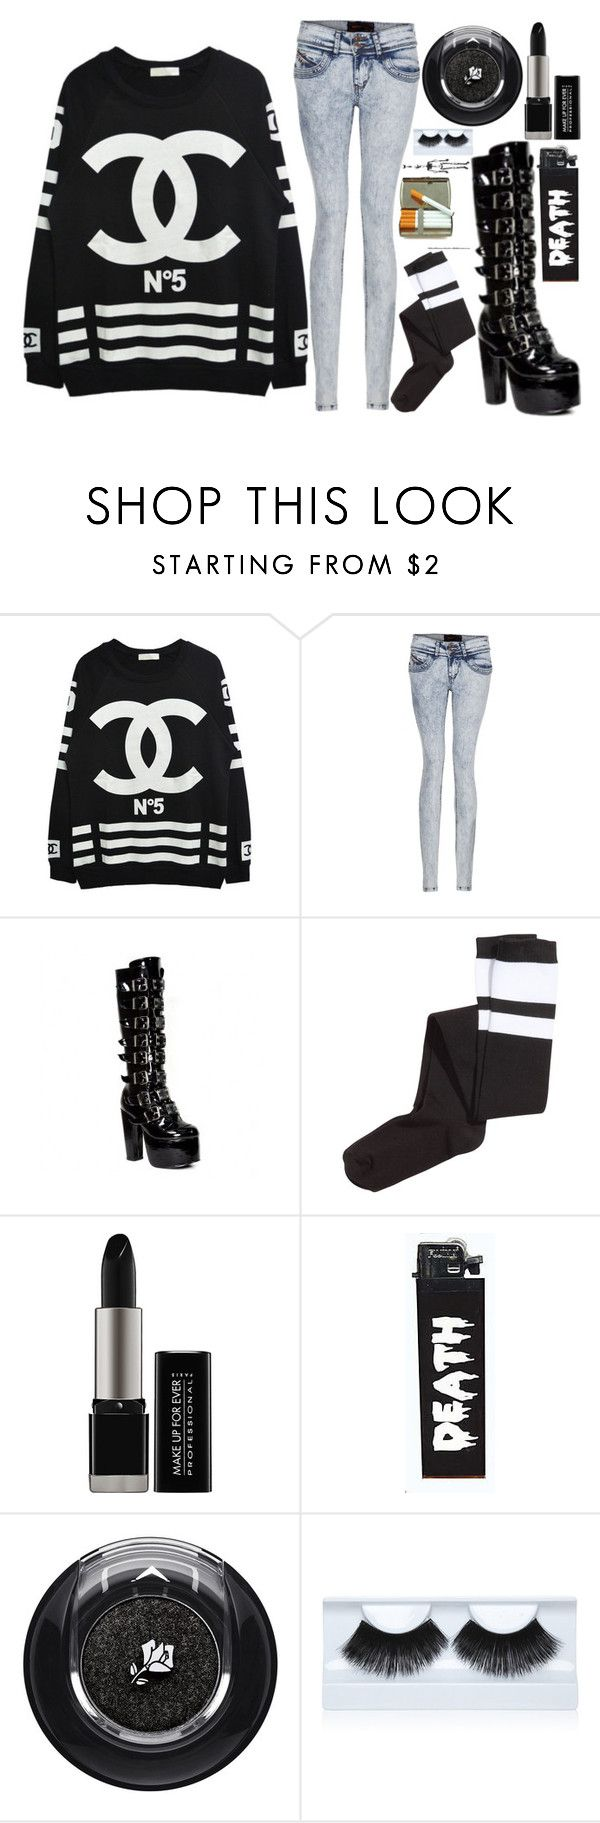 """Chanel"" by ofmiceandvampiraydg ❤ liked on Polyvore featuring Chanel, H&M, MAKE UP FOR EVER, Lancôme and Gorgeous Cosmetics"